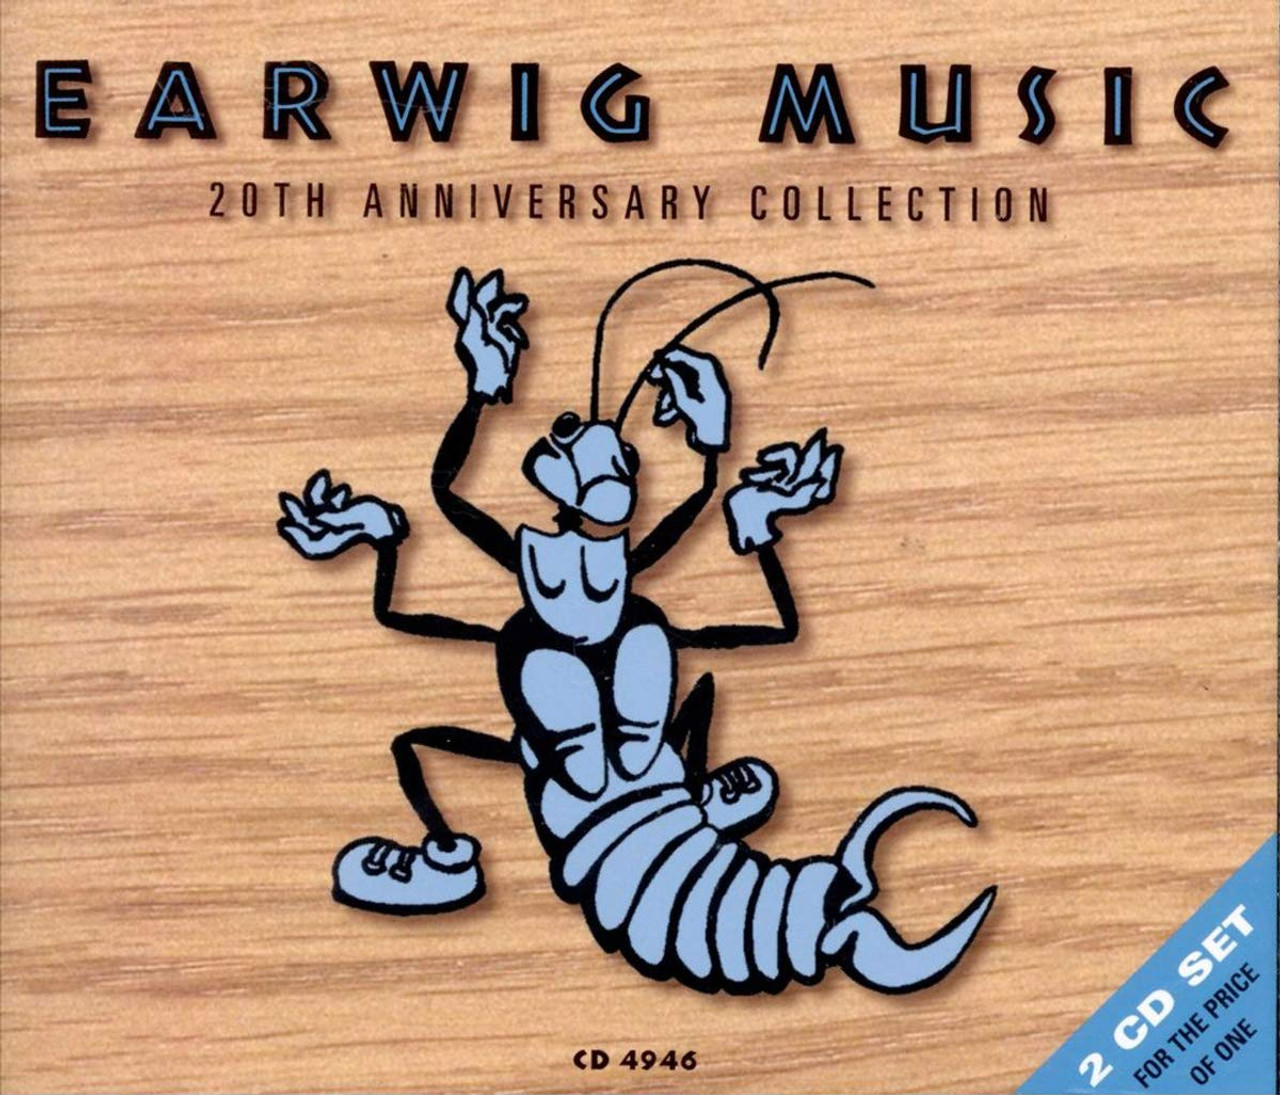 Earwig 20th Anniversary Collection - VARIOUS ARTISTS - 2 CD SET